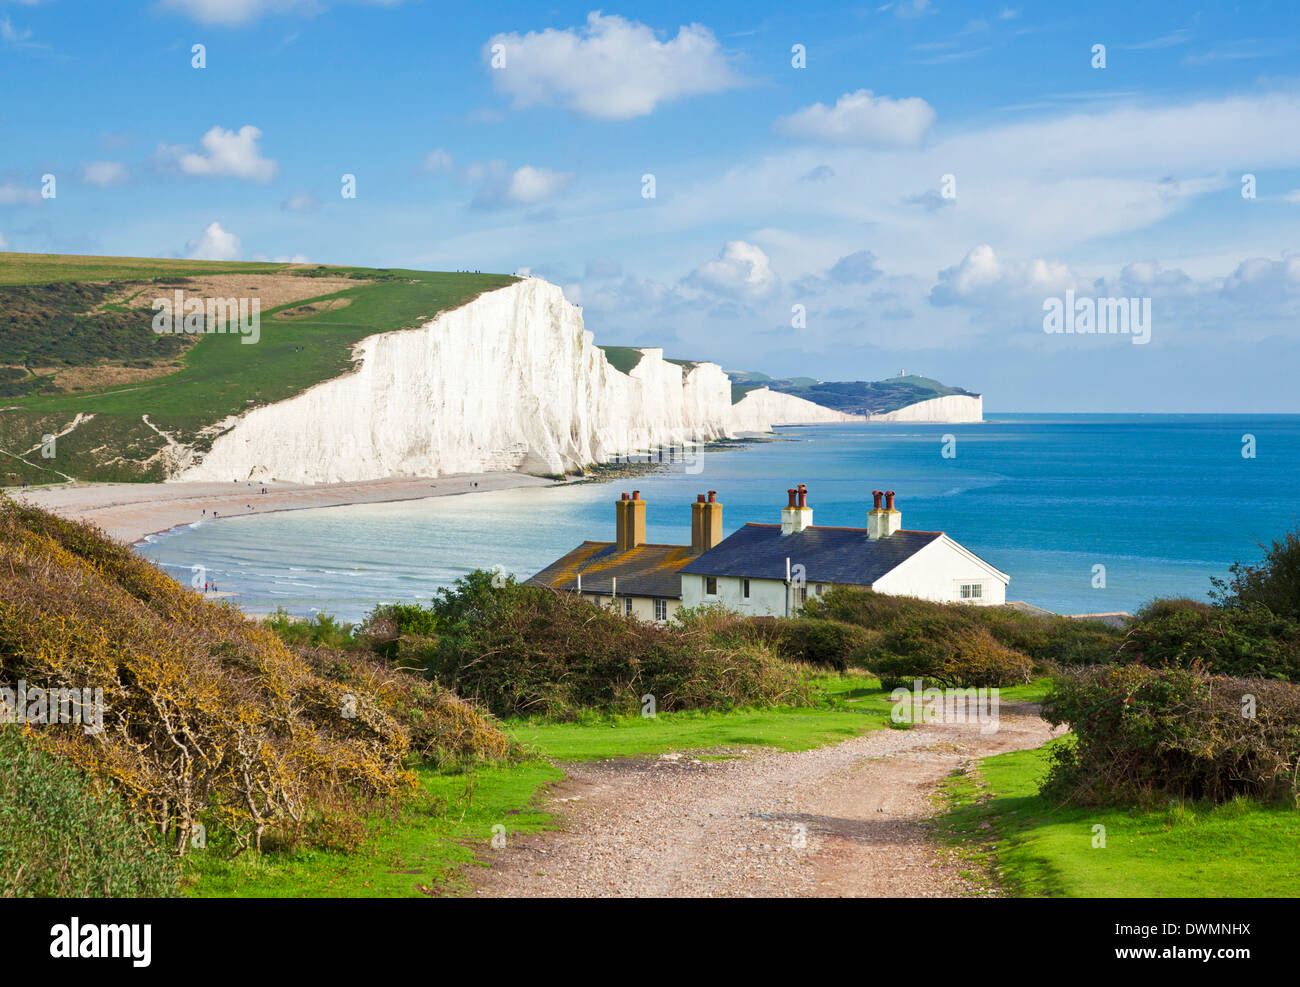 The Seven Sisters chalk cliffs and coastguard cottages, South Downs Way, South Downs National Park, East Sussex, England, UK - Stock Image